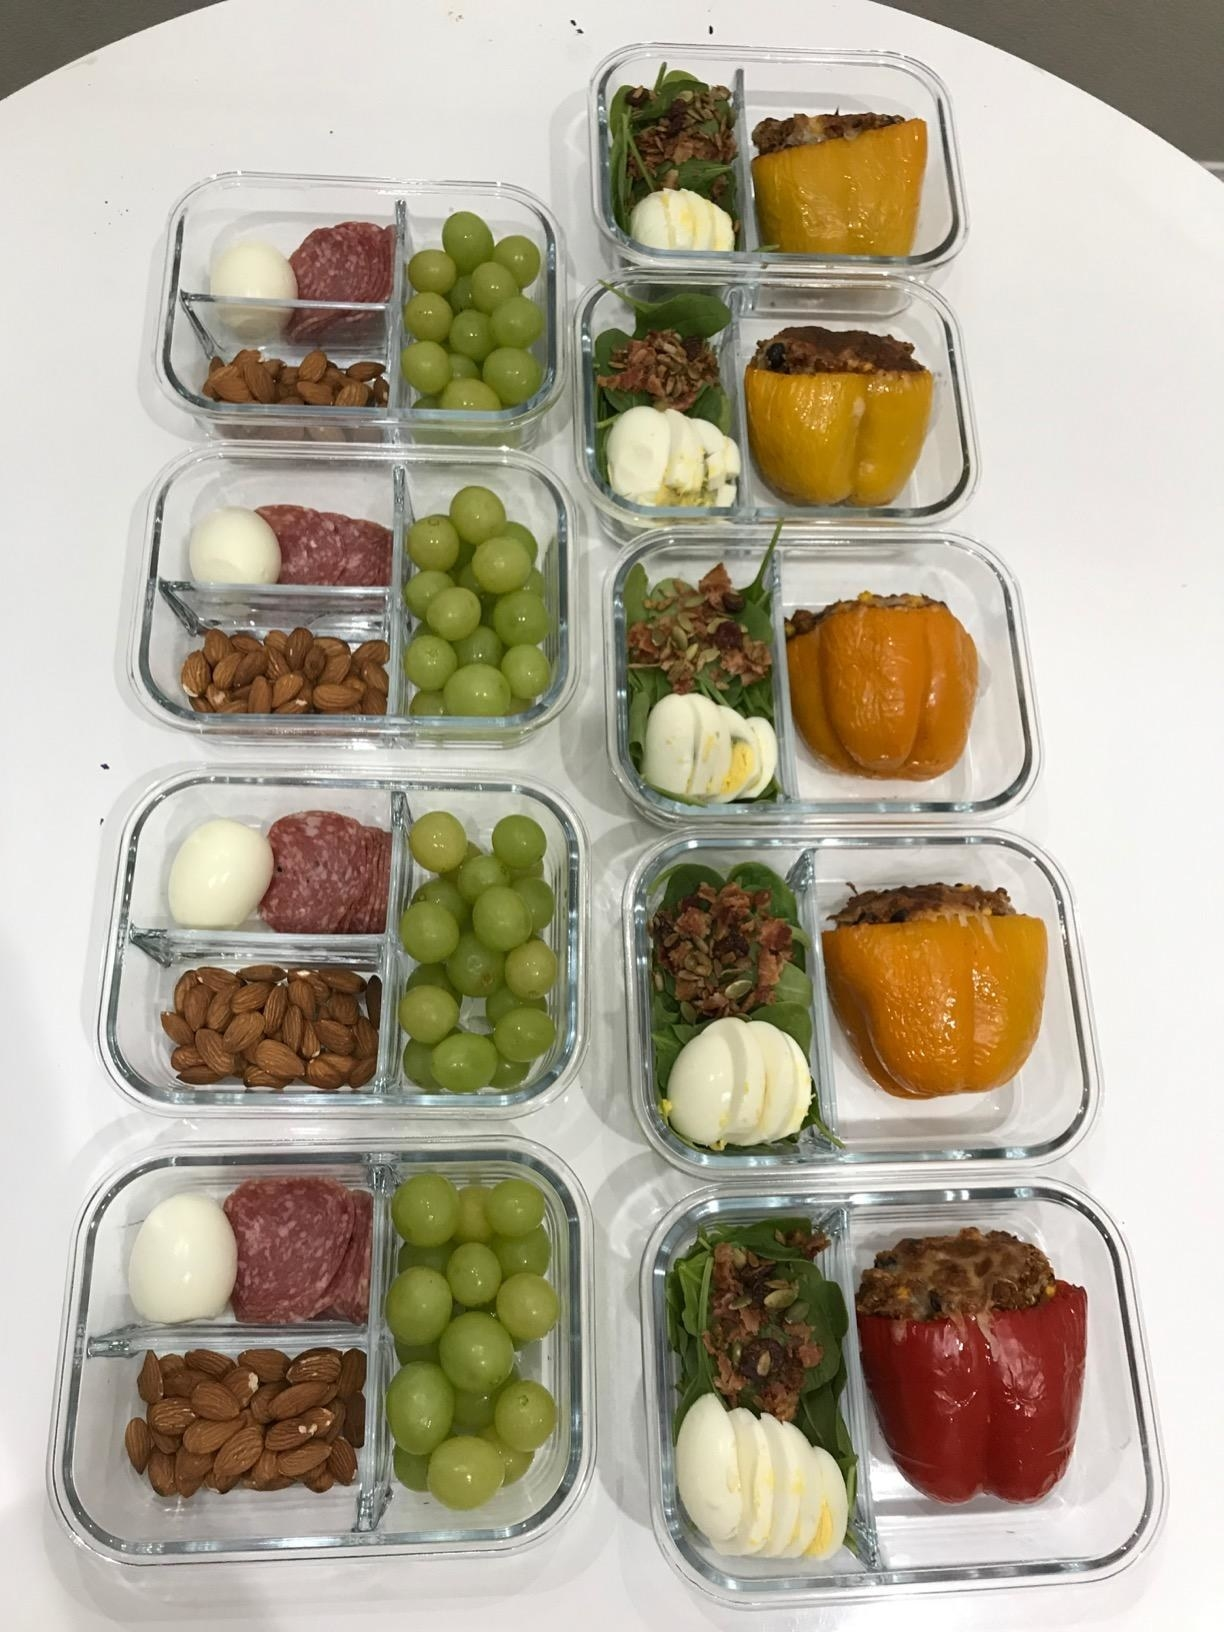 The containers laid out on a counter, with prepped food inside them